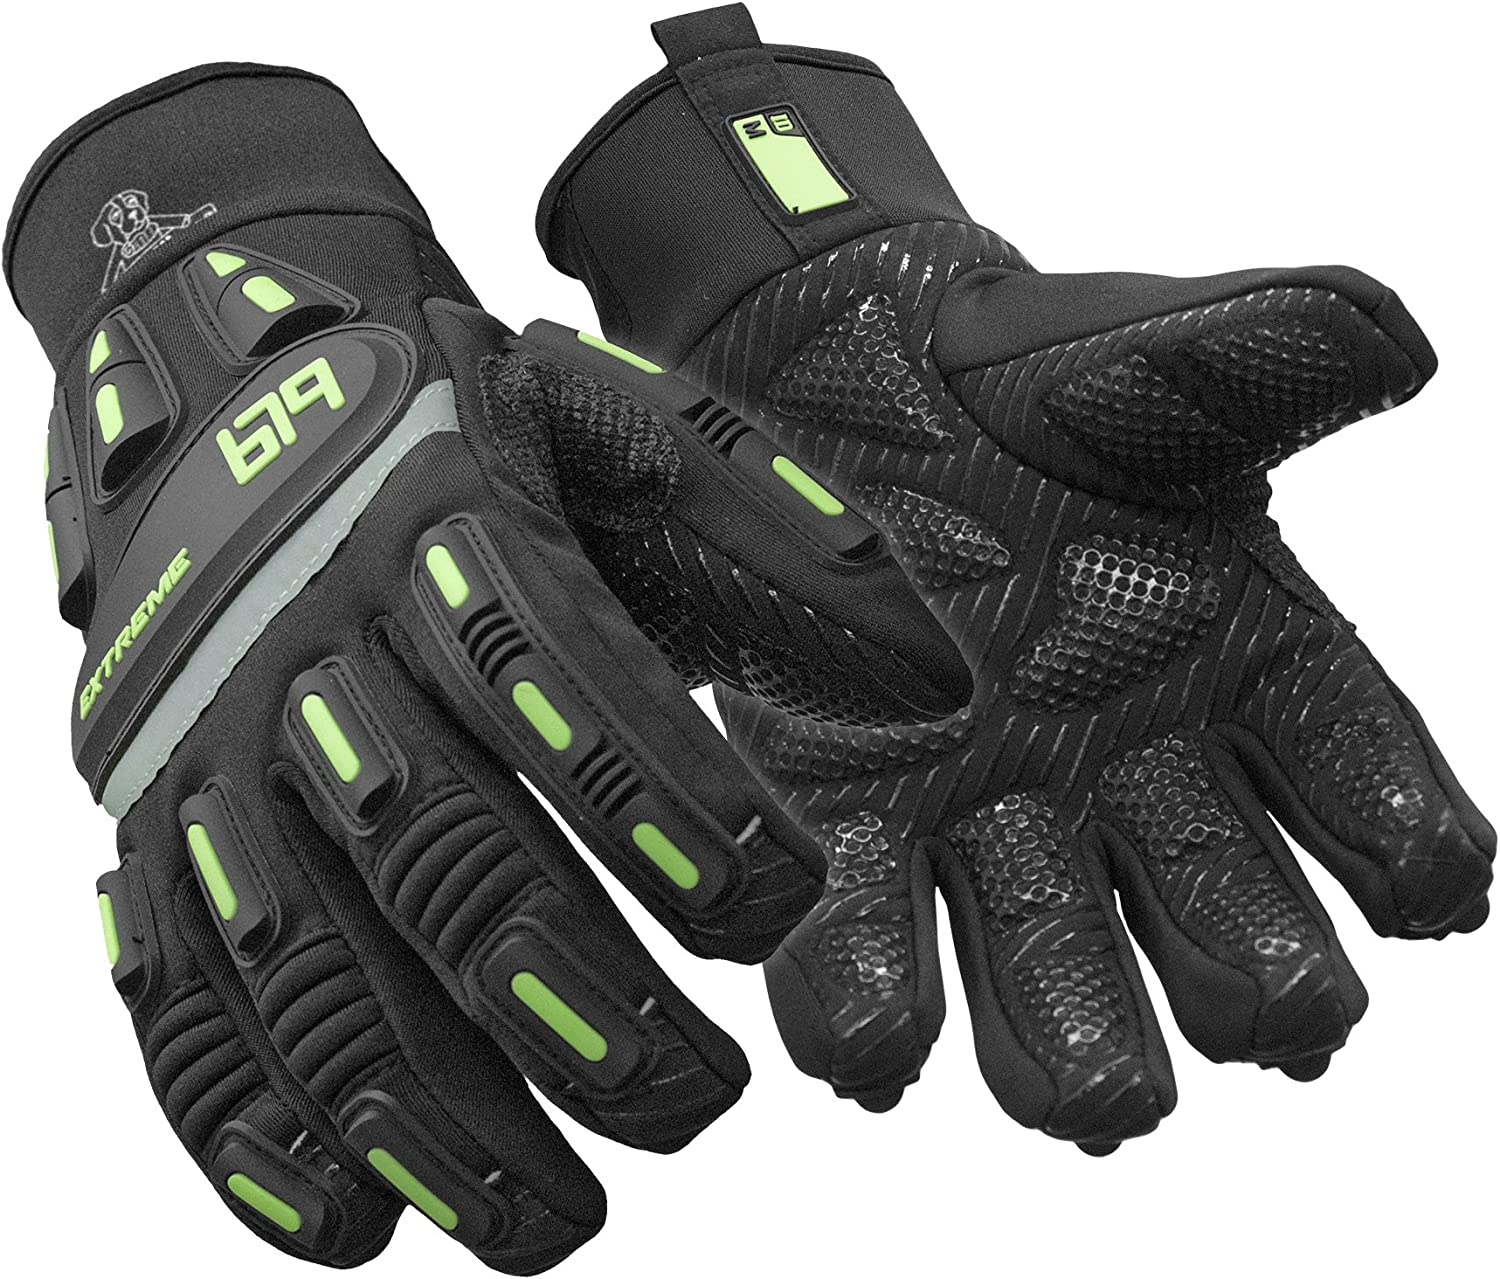 RefrigiWear Insulated Extreme Freezer Gloves with Palm Free shipping Grip Arlington Mall Im